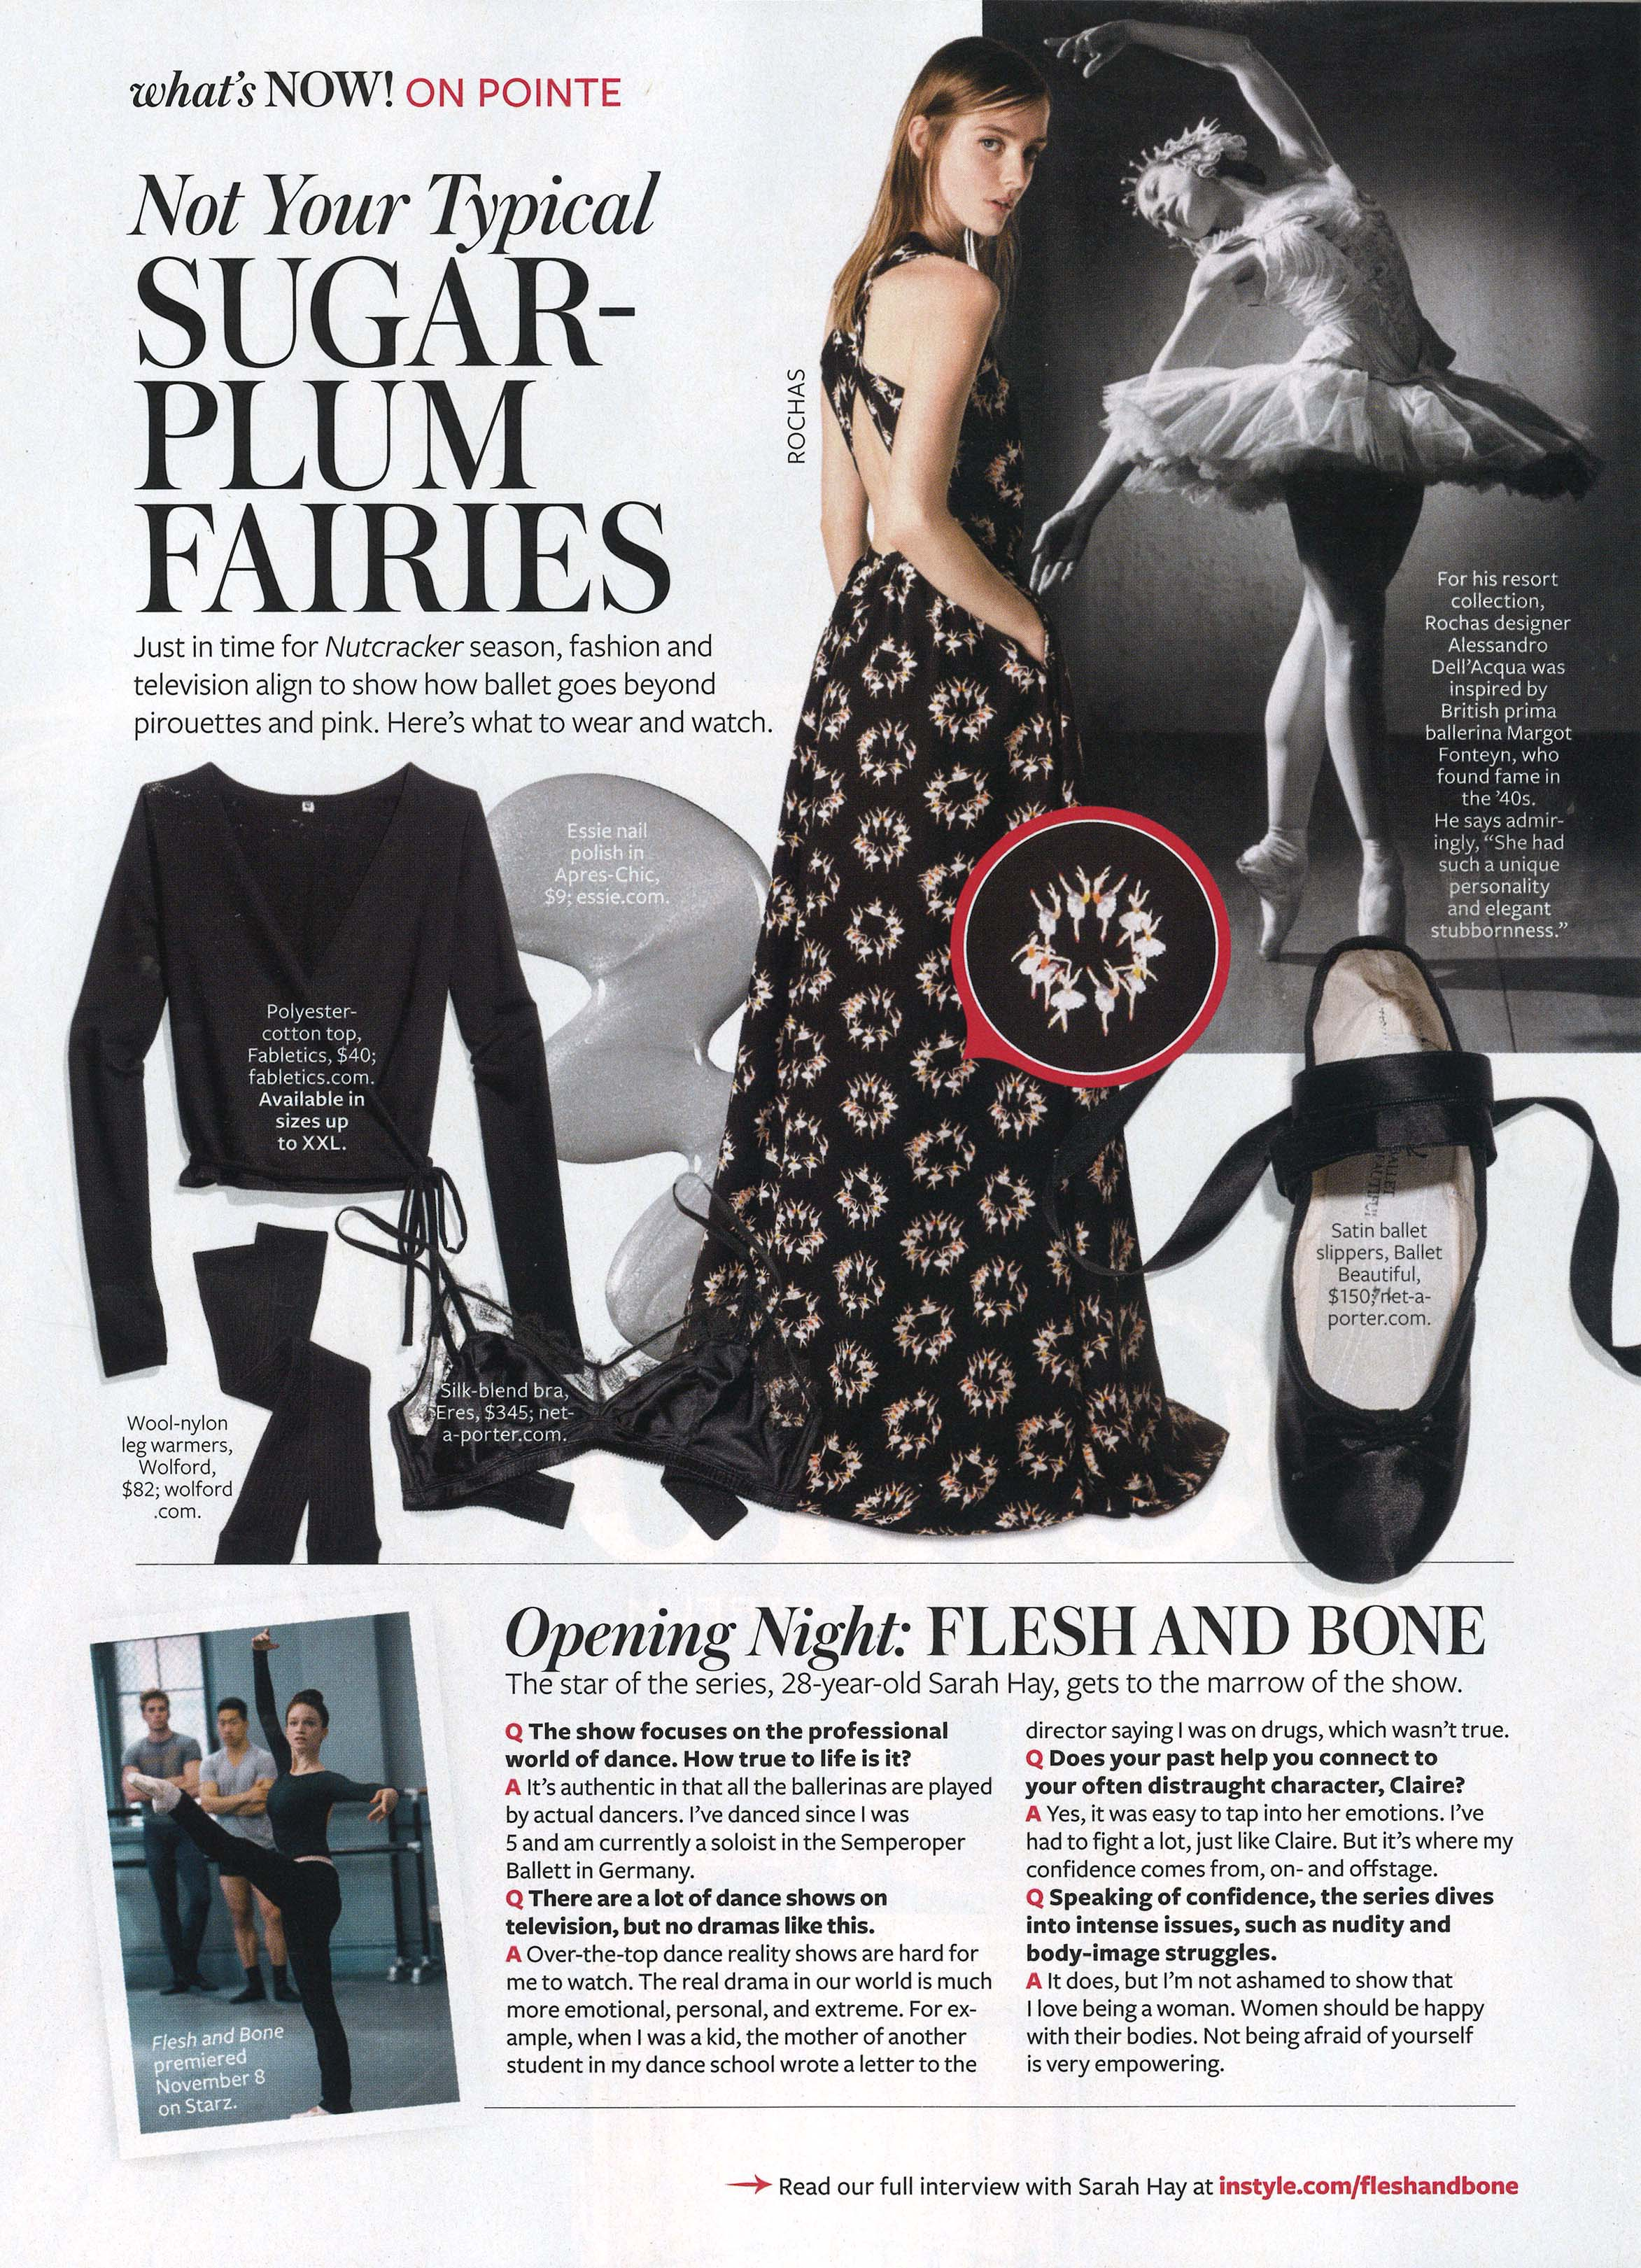 instyle image